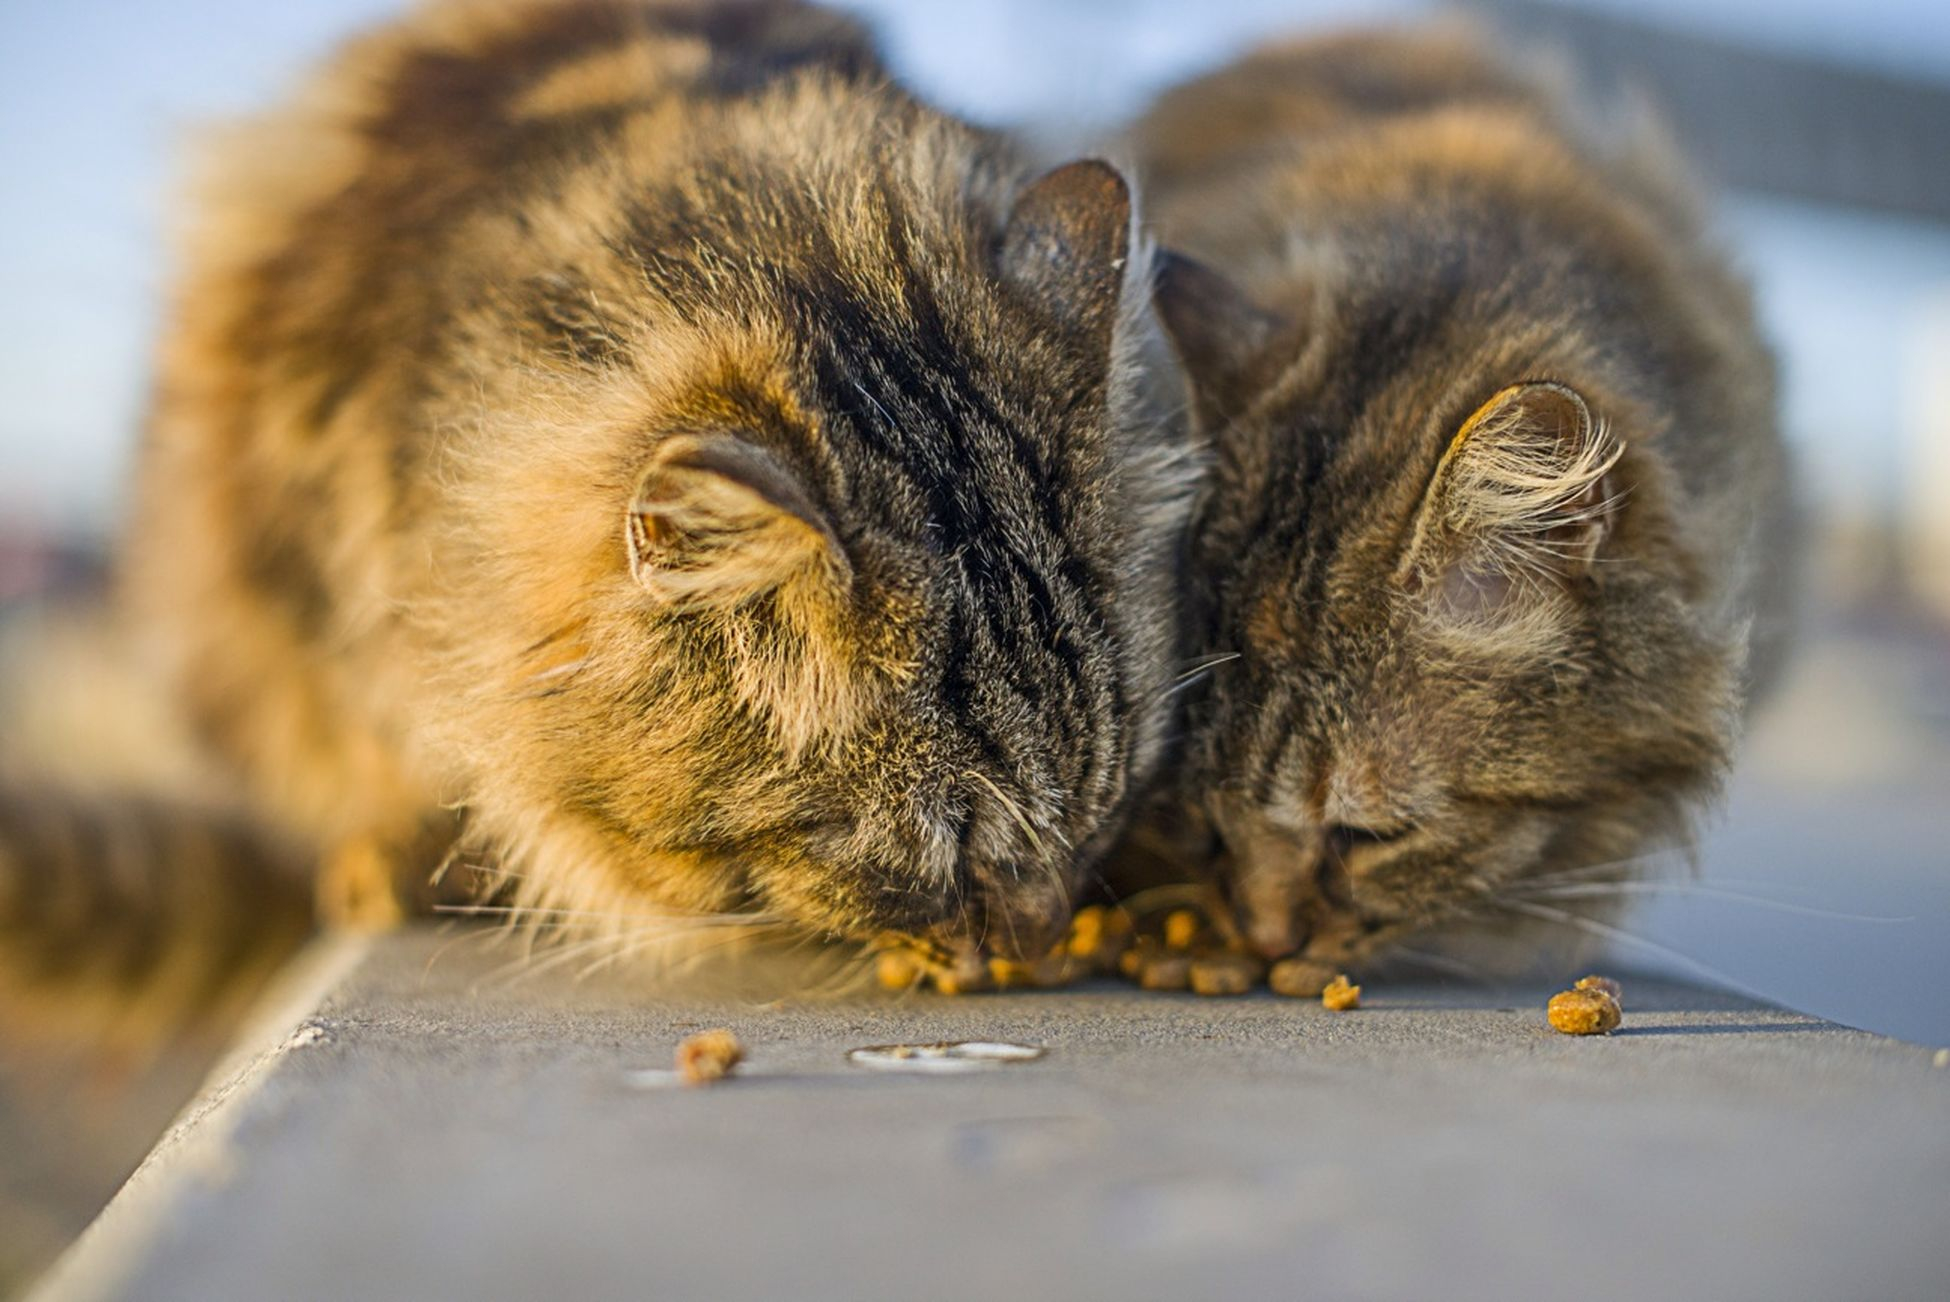 animal themes, one animal, focus on foreground, mammal, domestic cat, close-up, pets, domestic animals, animals in the wild, wildlife, selective focus, whisker, cat, feline, young animal, indoors, two animals, sitting, day, no people